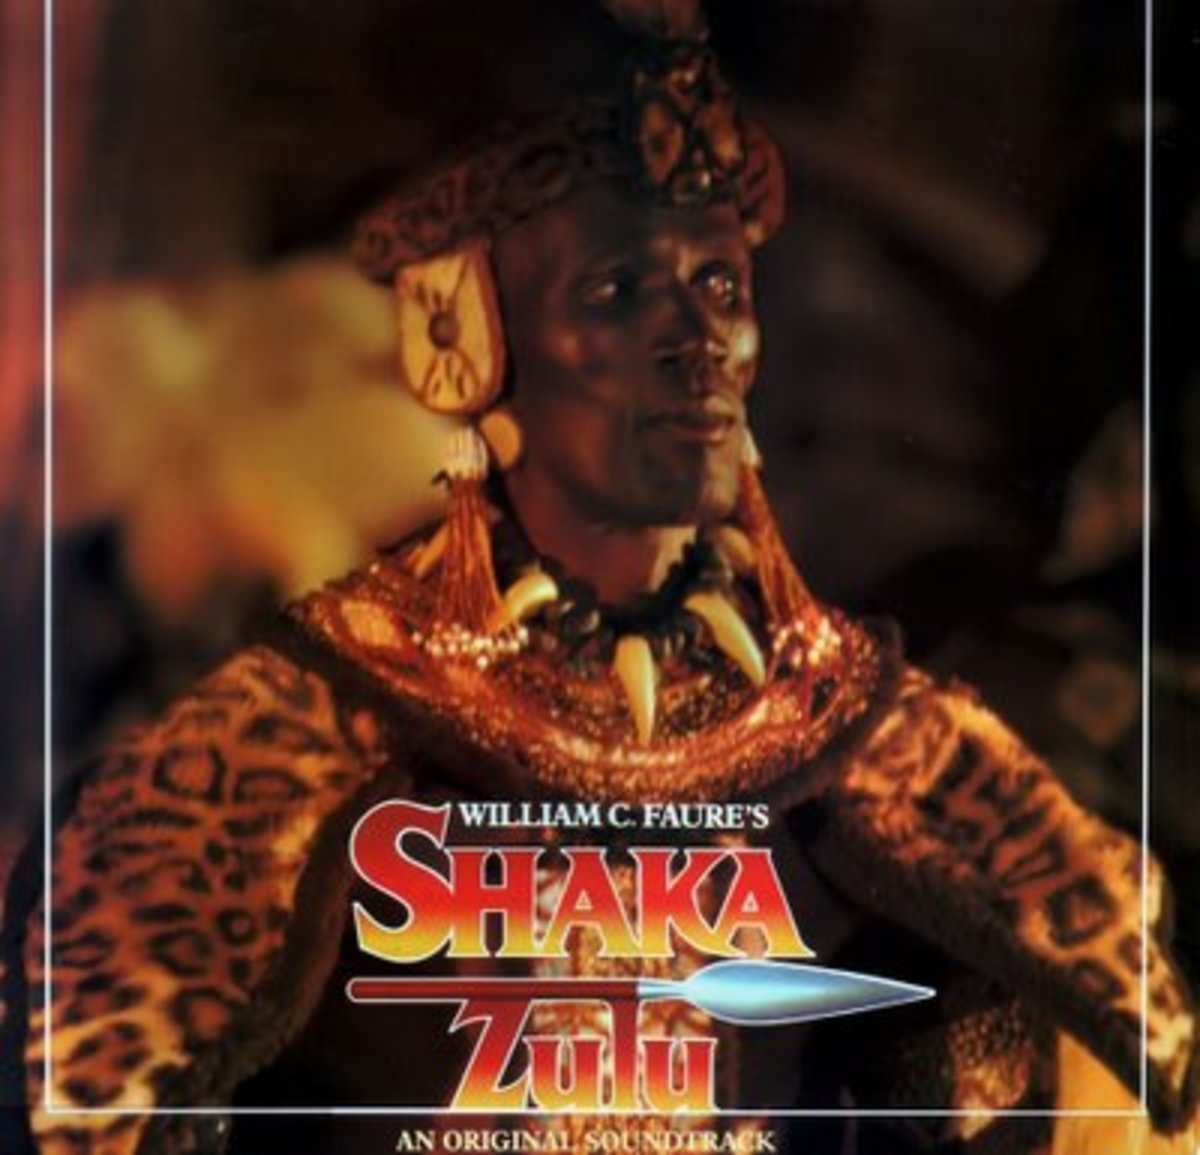 Depiction of Shaka's Image and character by Actor (Henry Cele) in this picture